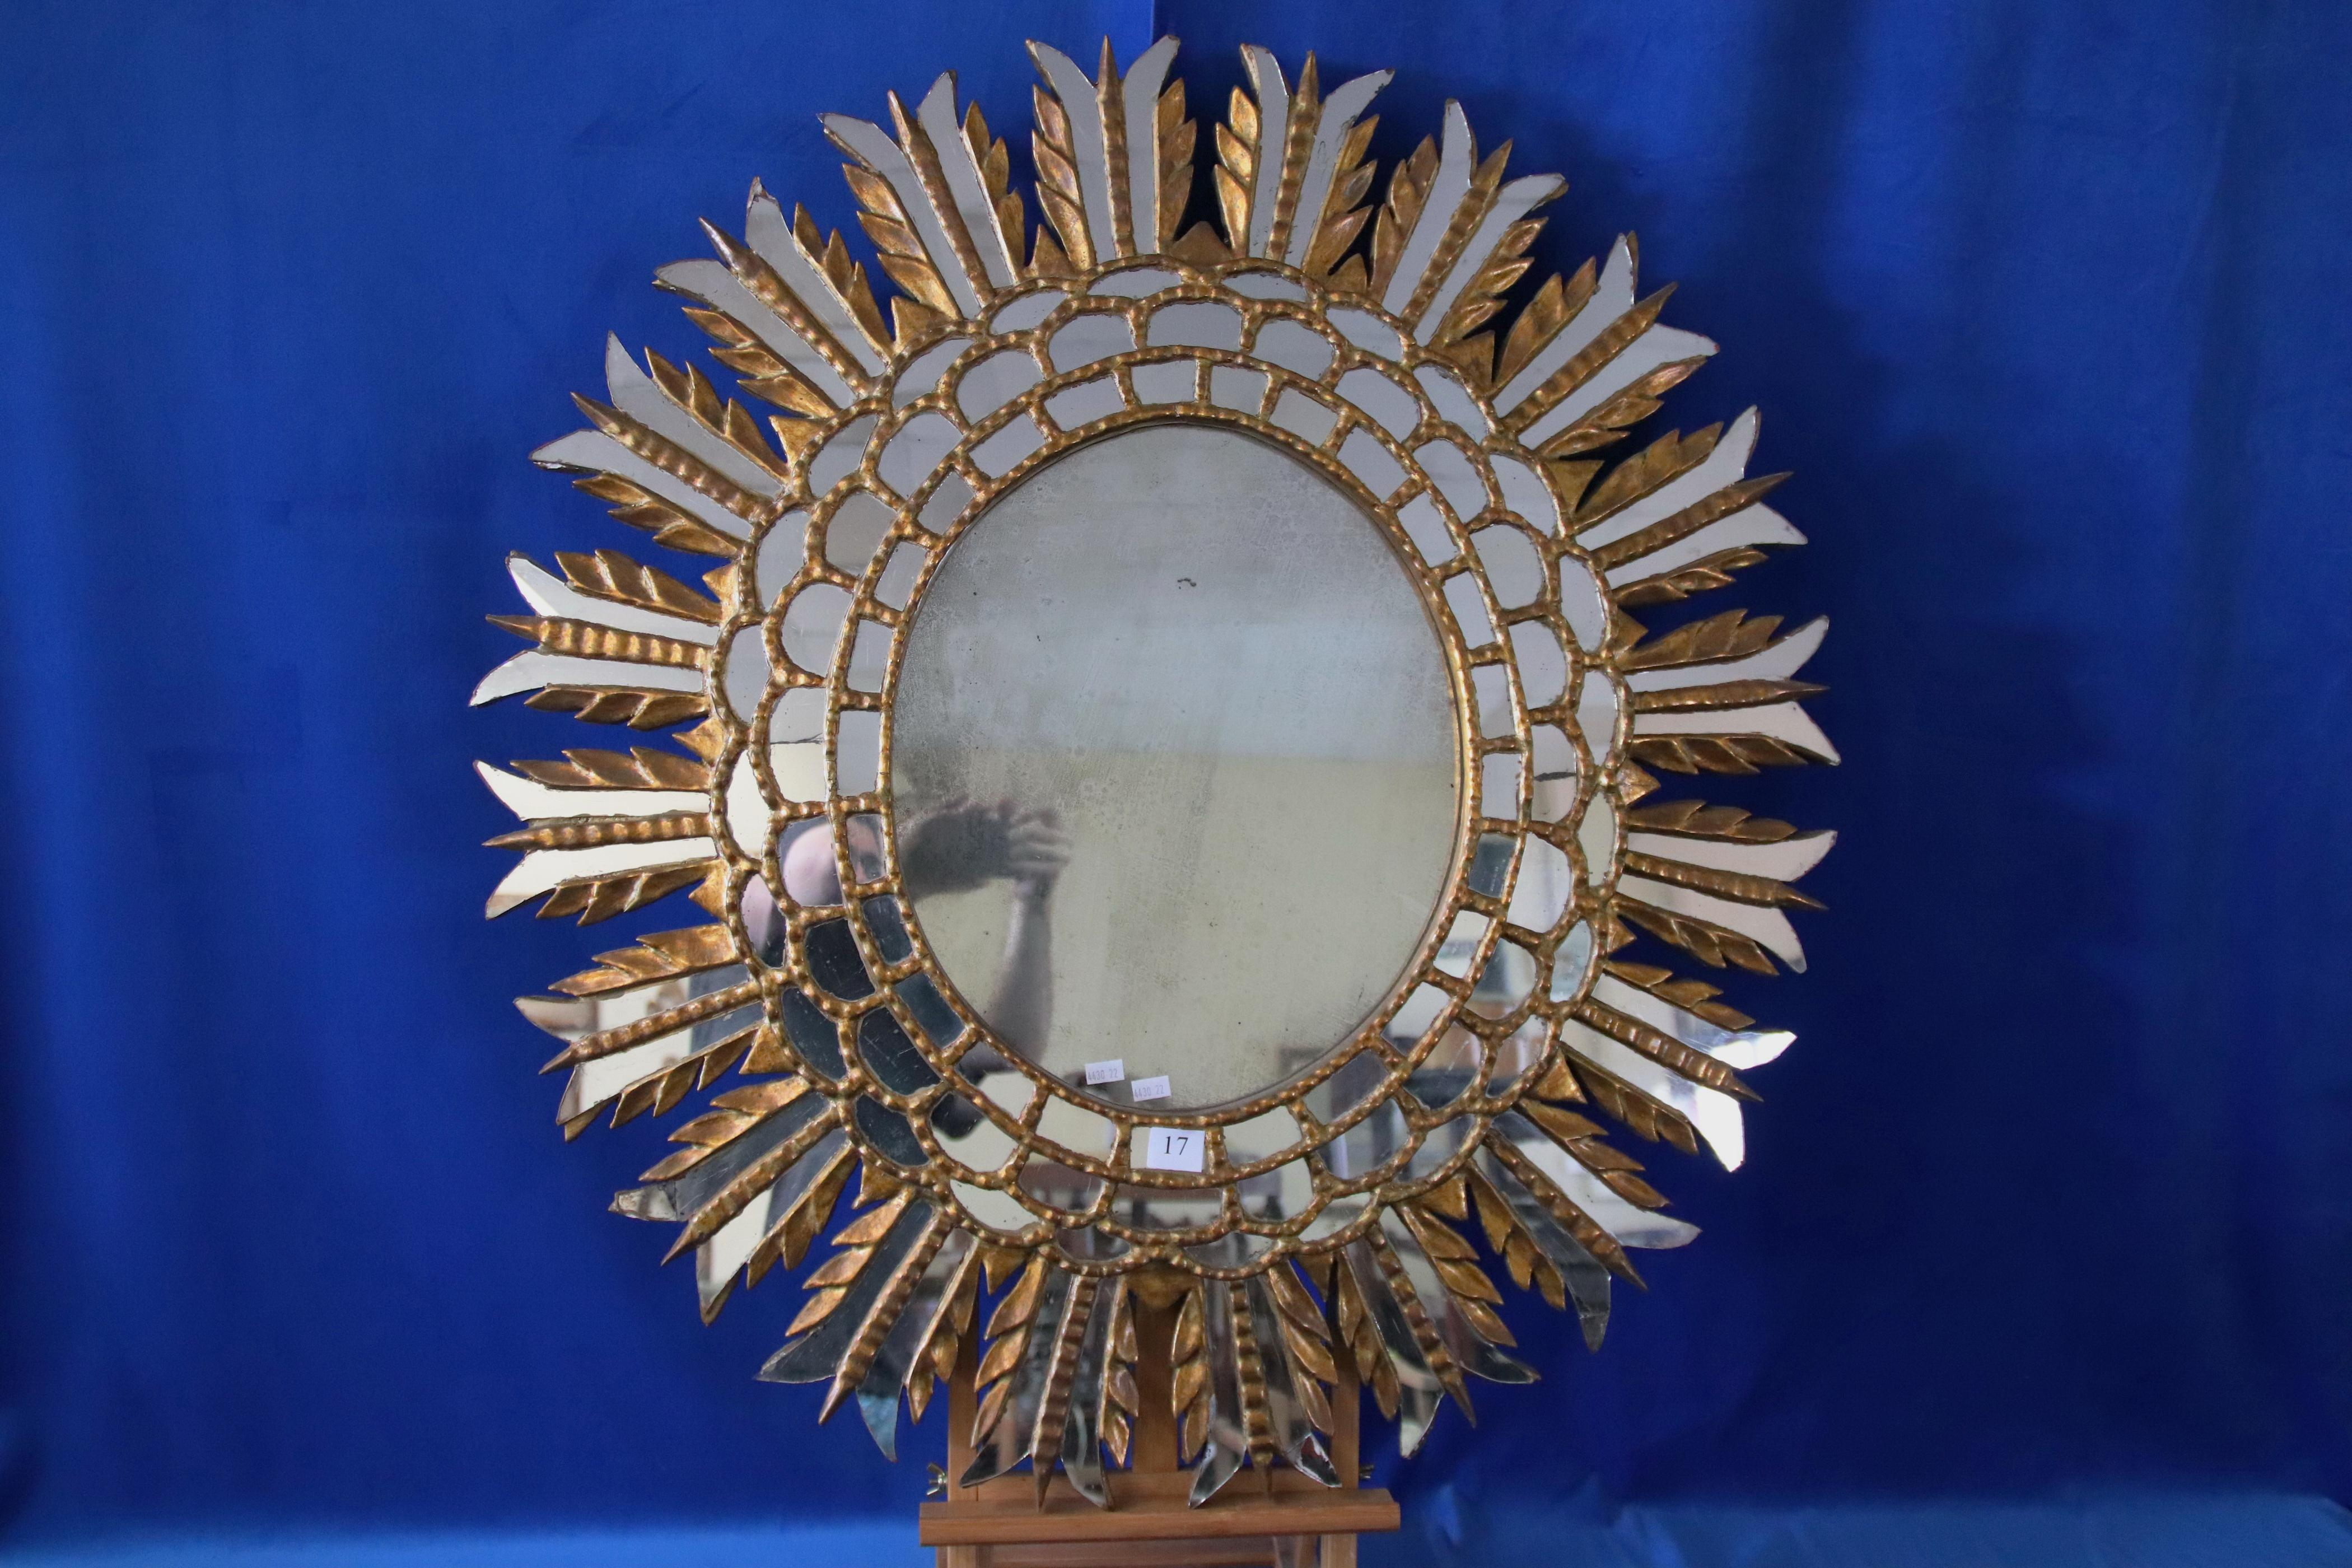 LARGE WOODNFRAMED GOLD CONCENTRIC MIRROR THE FLAME BURSTS QUILL LIKE, 85CM DIAM (SOME DAMAGE TO MIRROR PANELS)